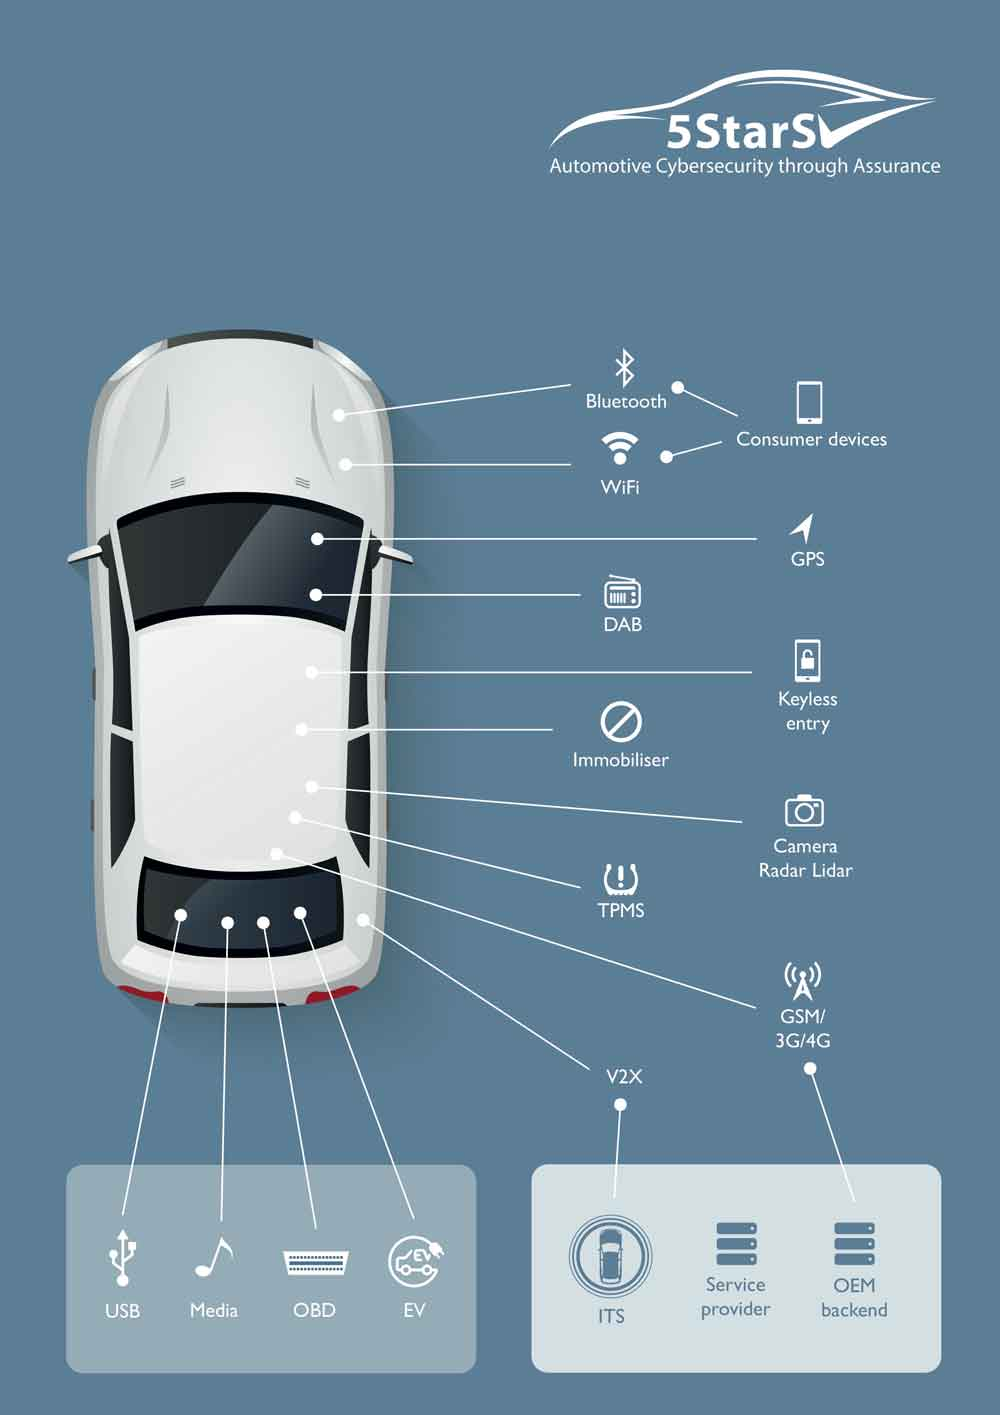 5StarS Begins Consultation with Automotive Industry on New Vehicle Cybersecurity Rating Scheme